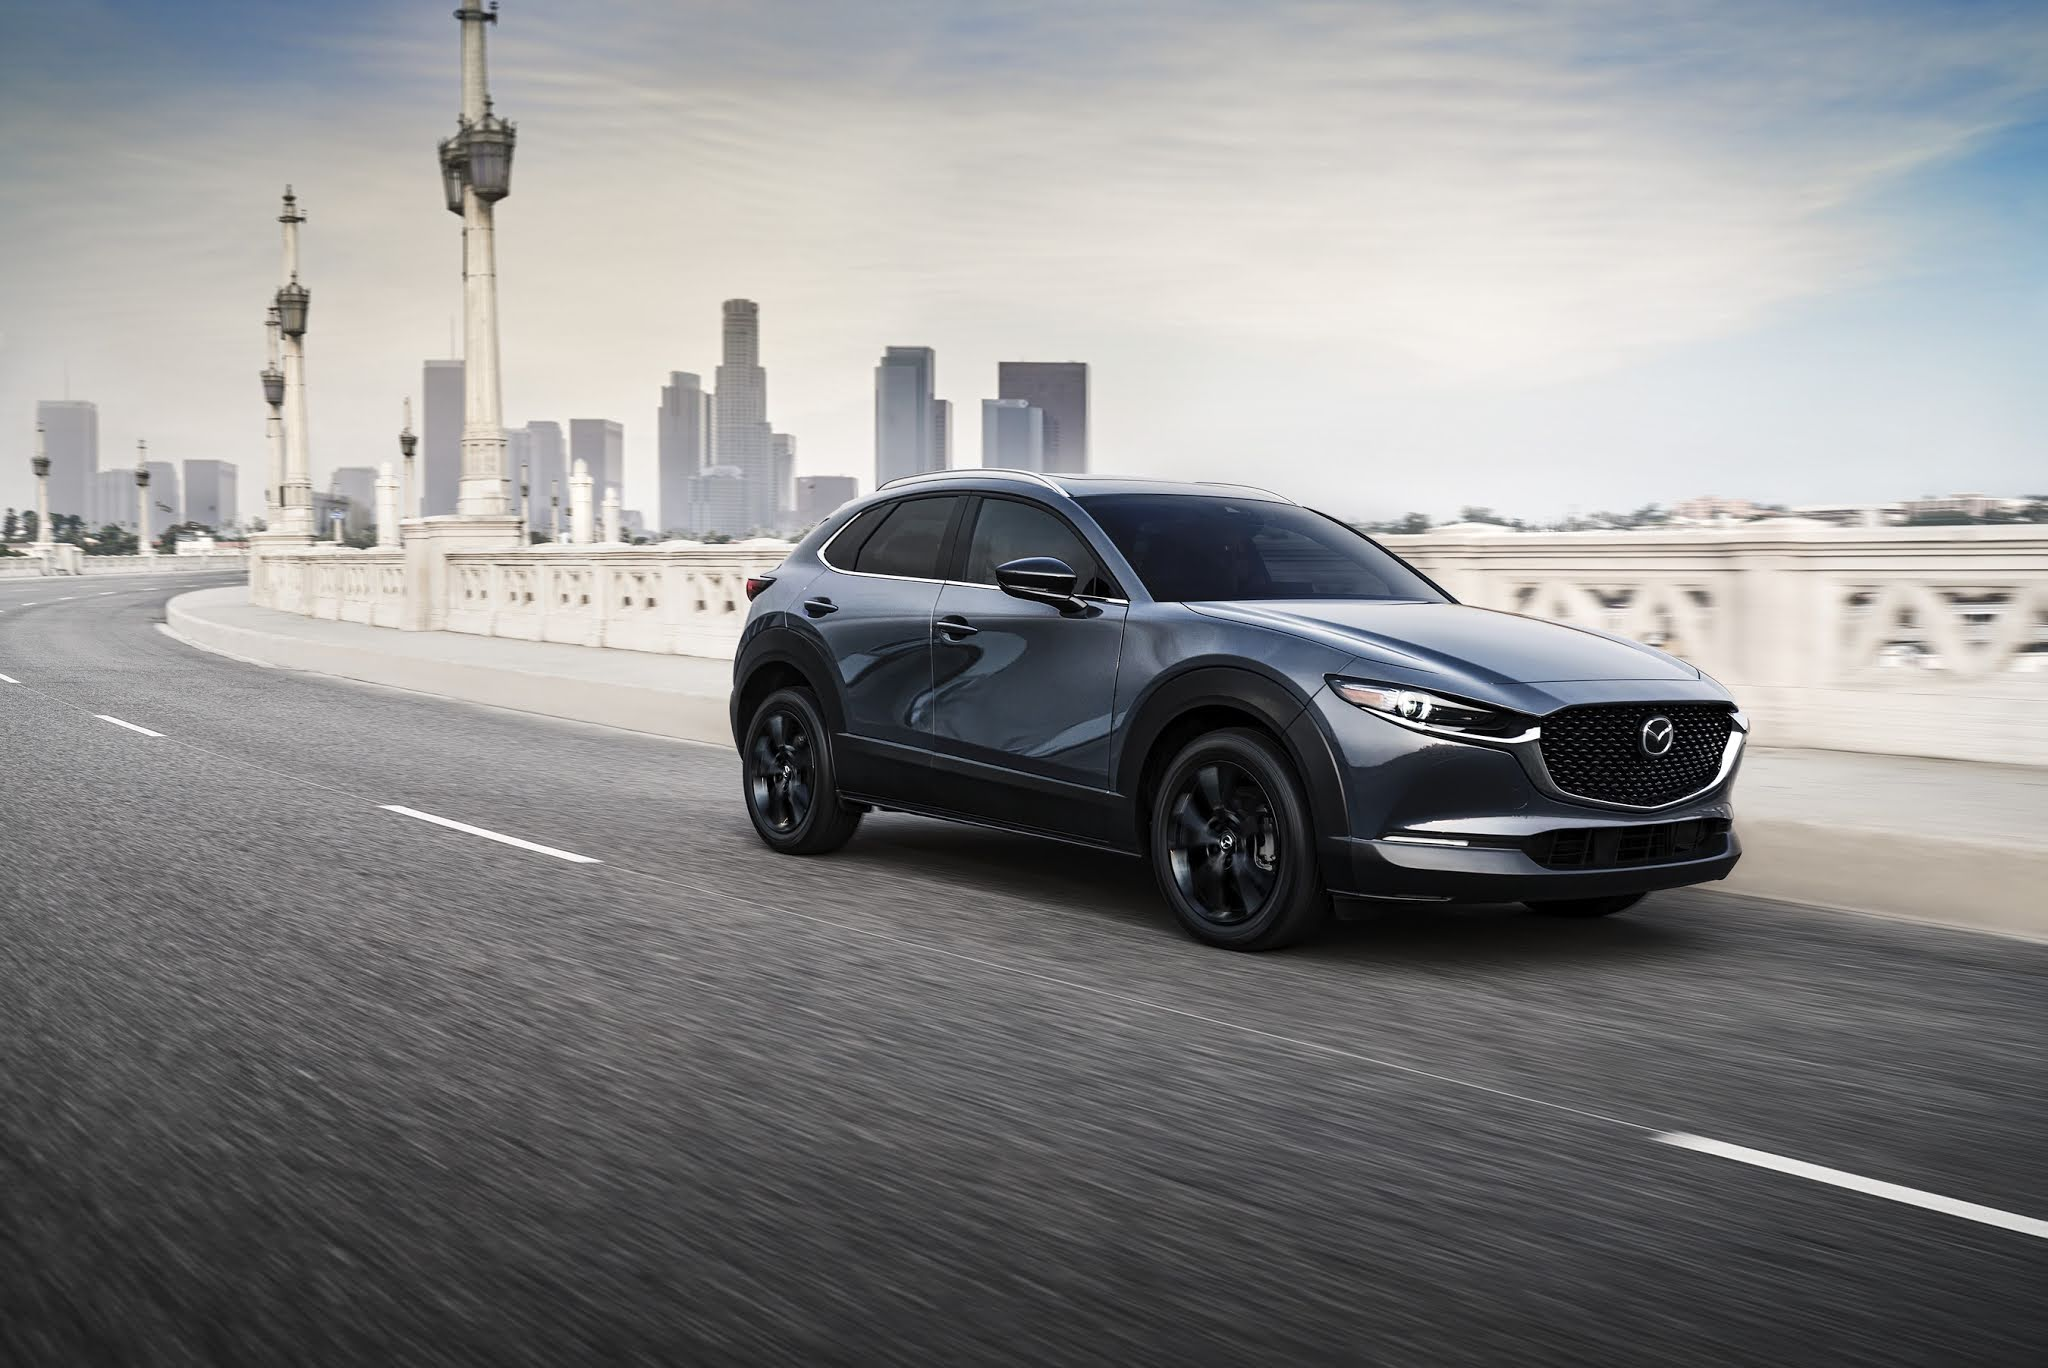 2021 Mazda CX-30 2.5 Turbo: Empowering Performance